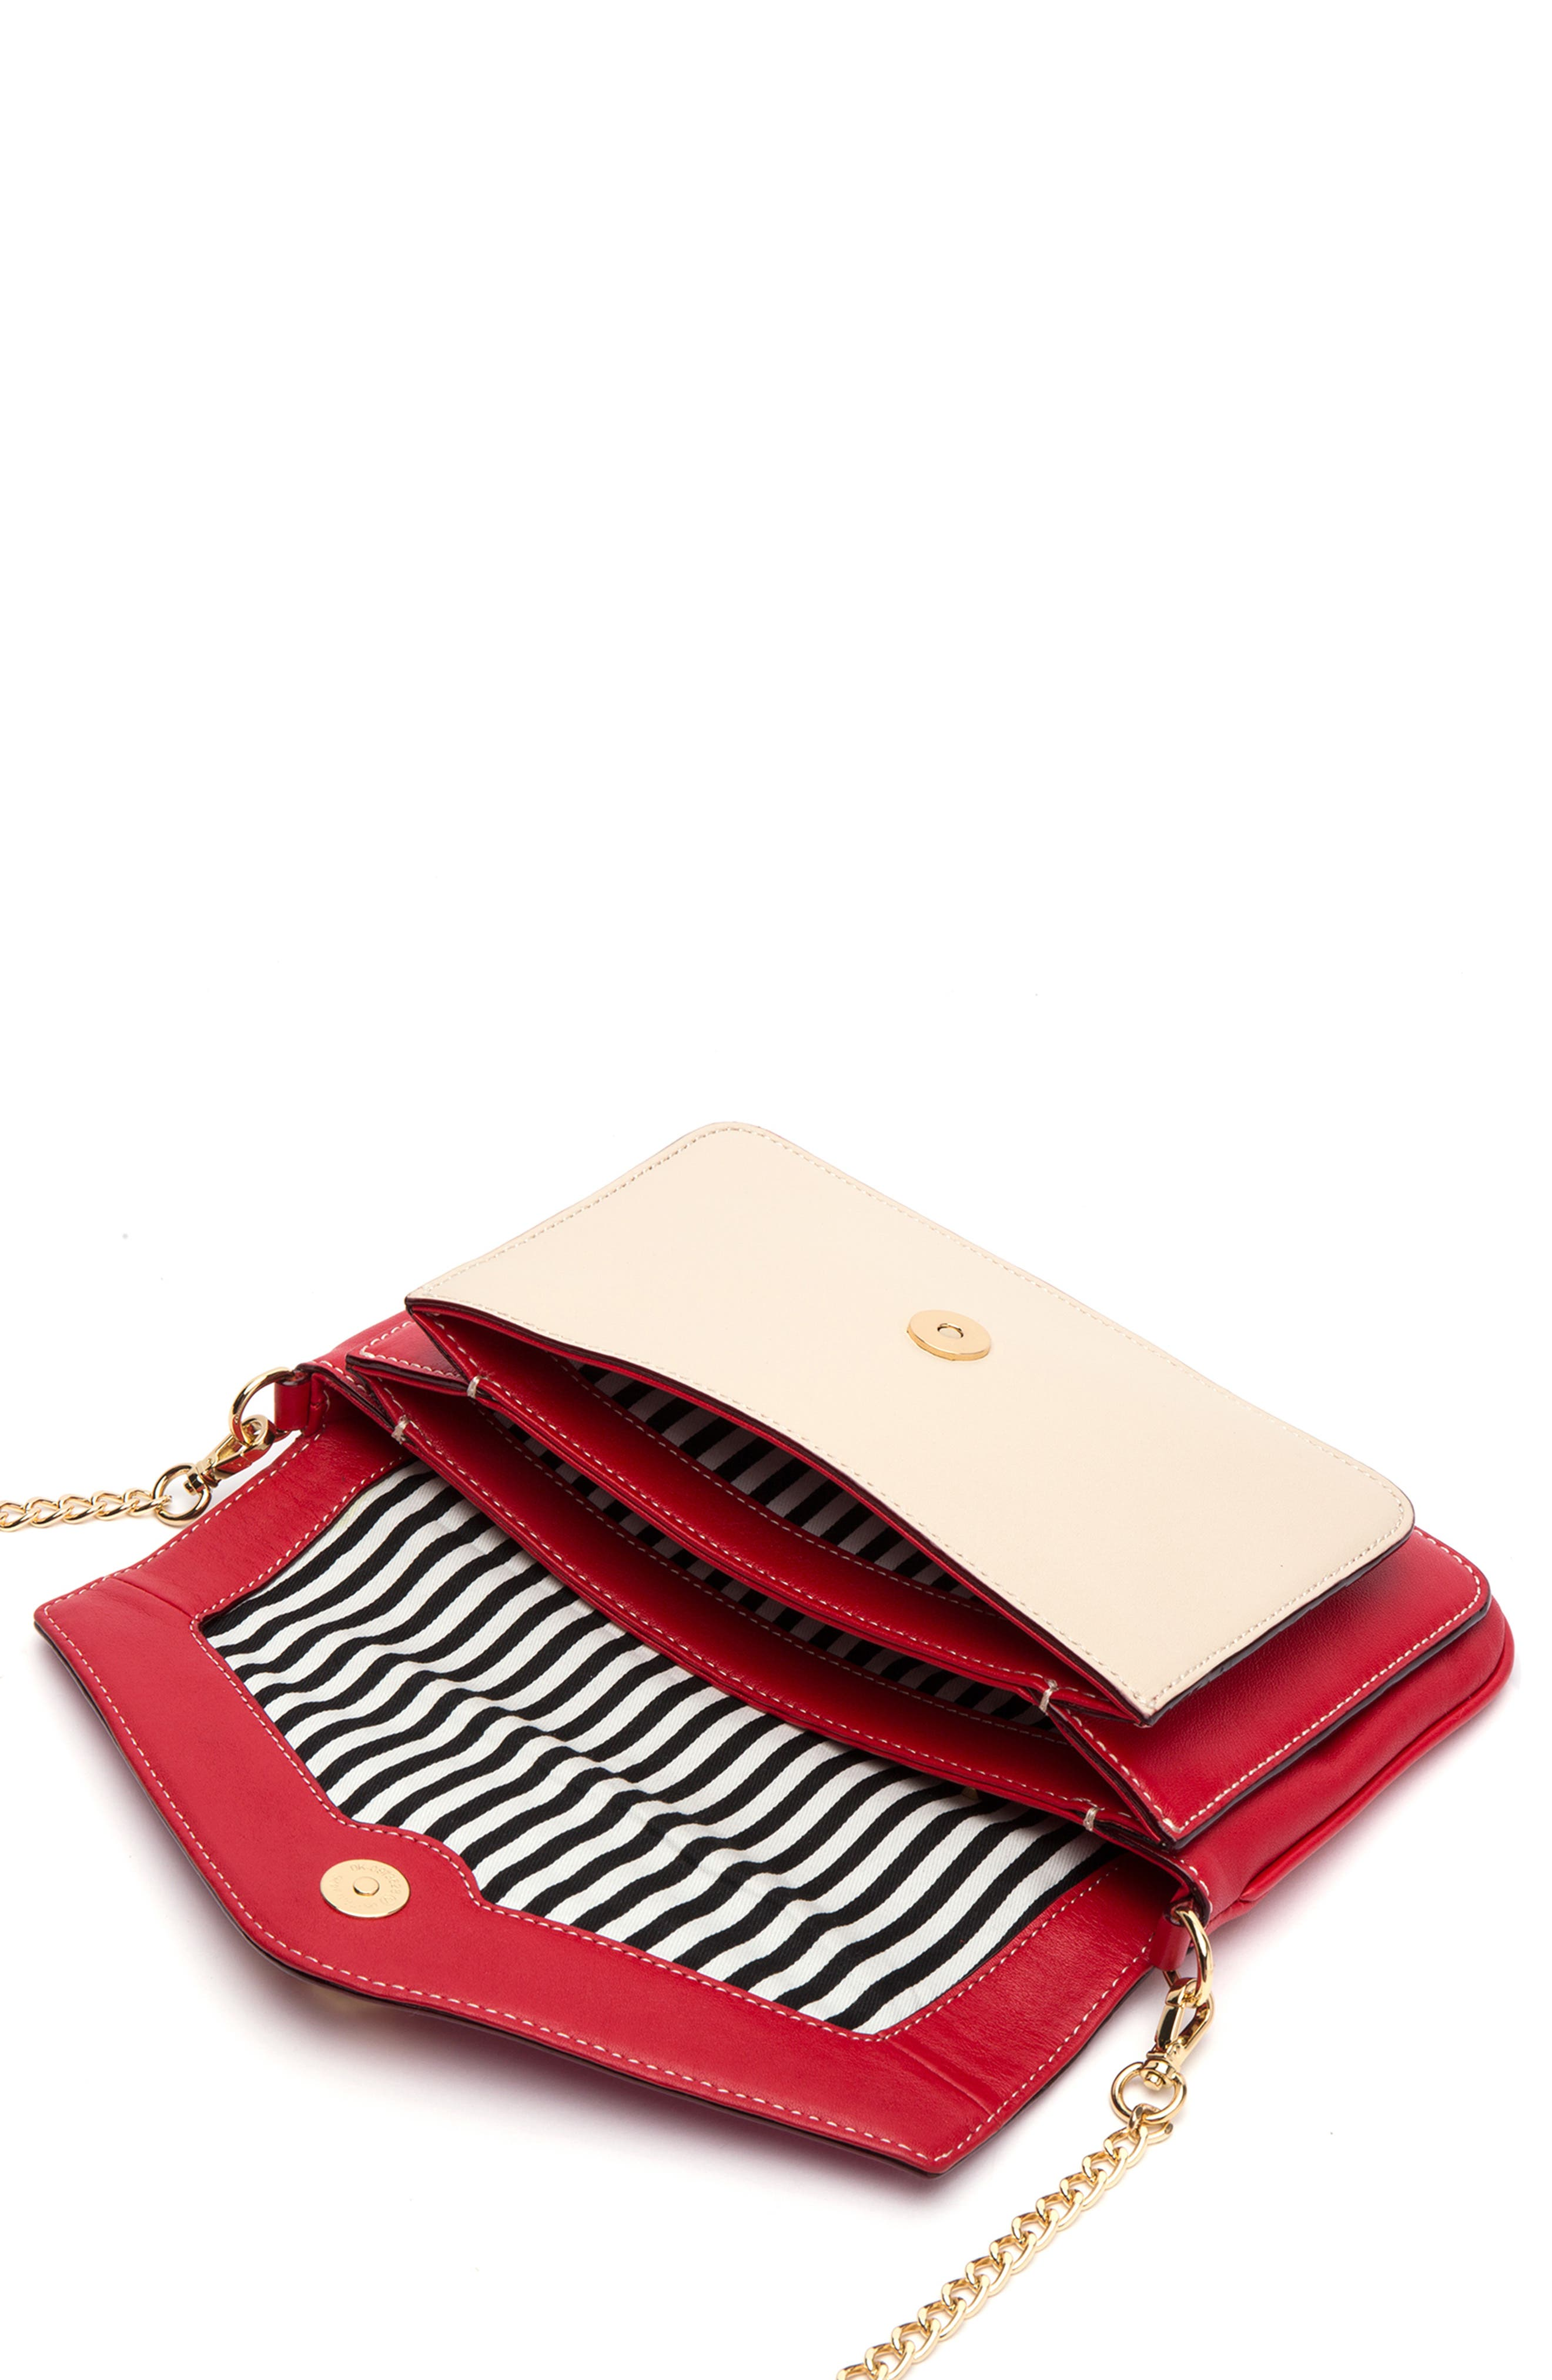 Tess Colorblock Leather Clutch,                             Alternate thumbnail 2, color,                             BLACK/ OYSTER/ RED